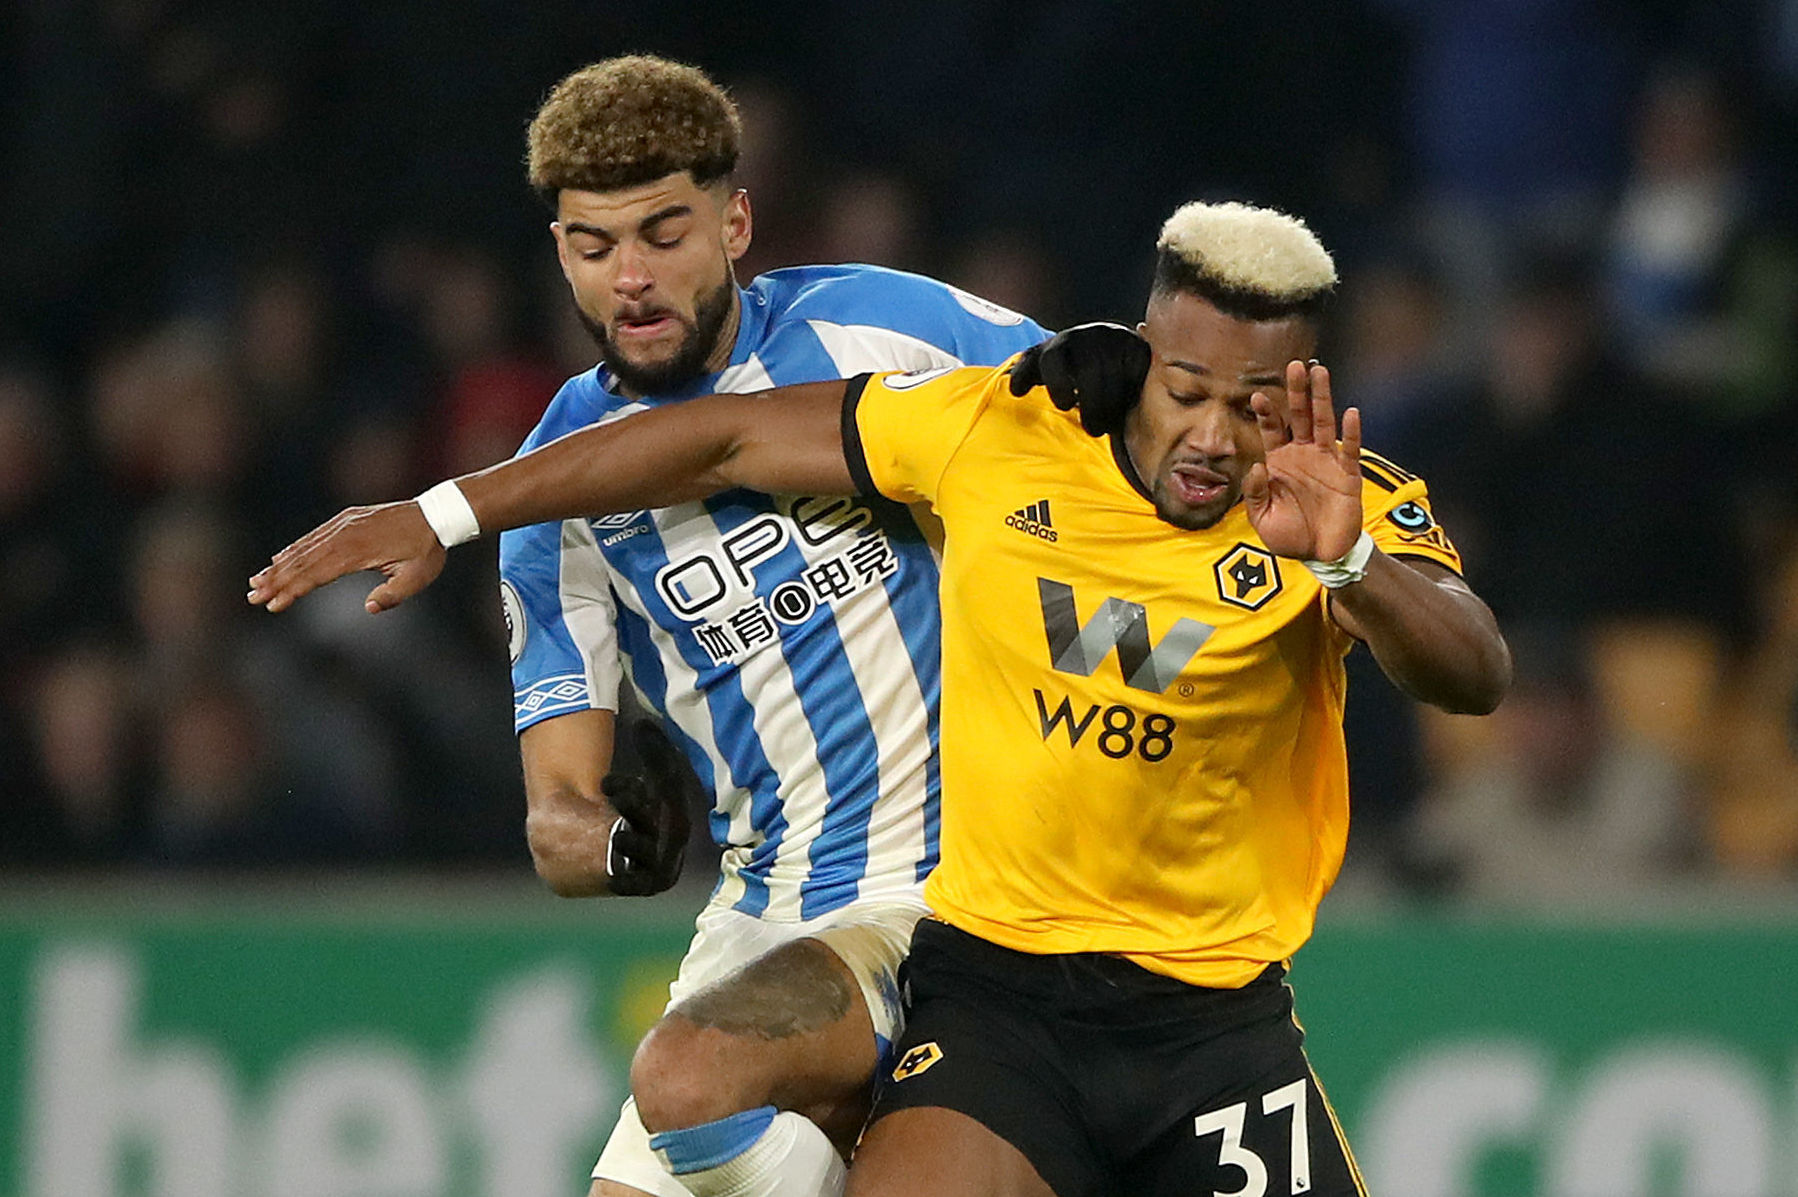 Report claims Huddersfield want £17million for Philip Billing amid interest from AFC Bournemouth